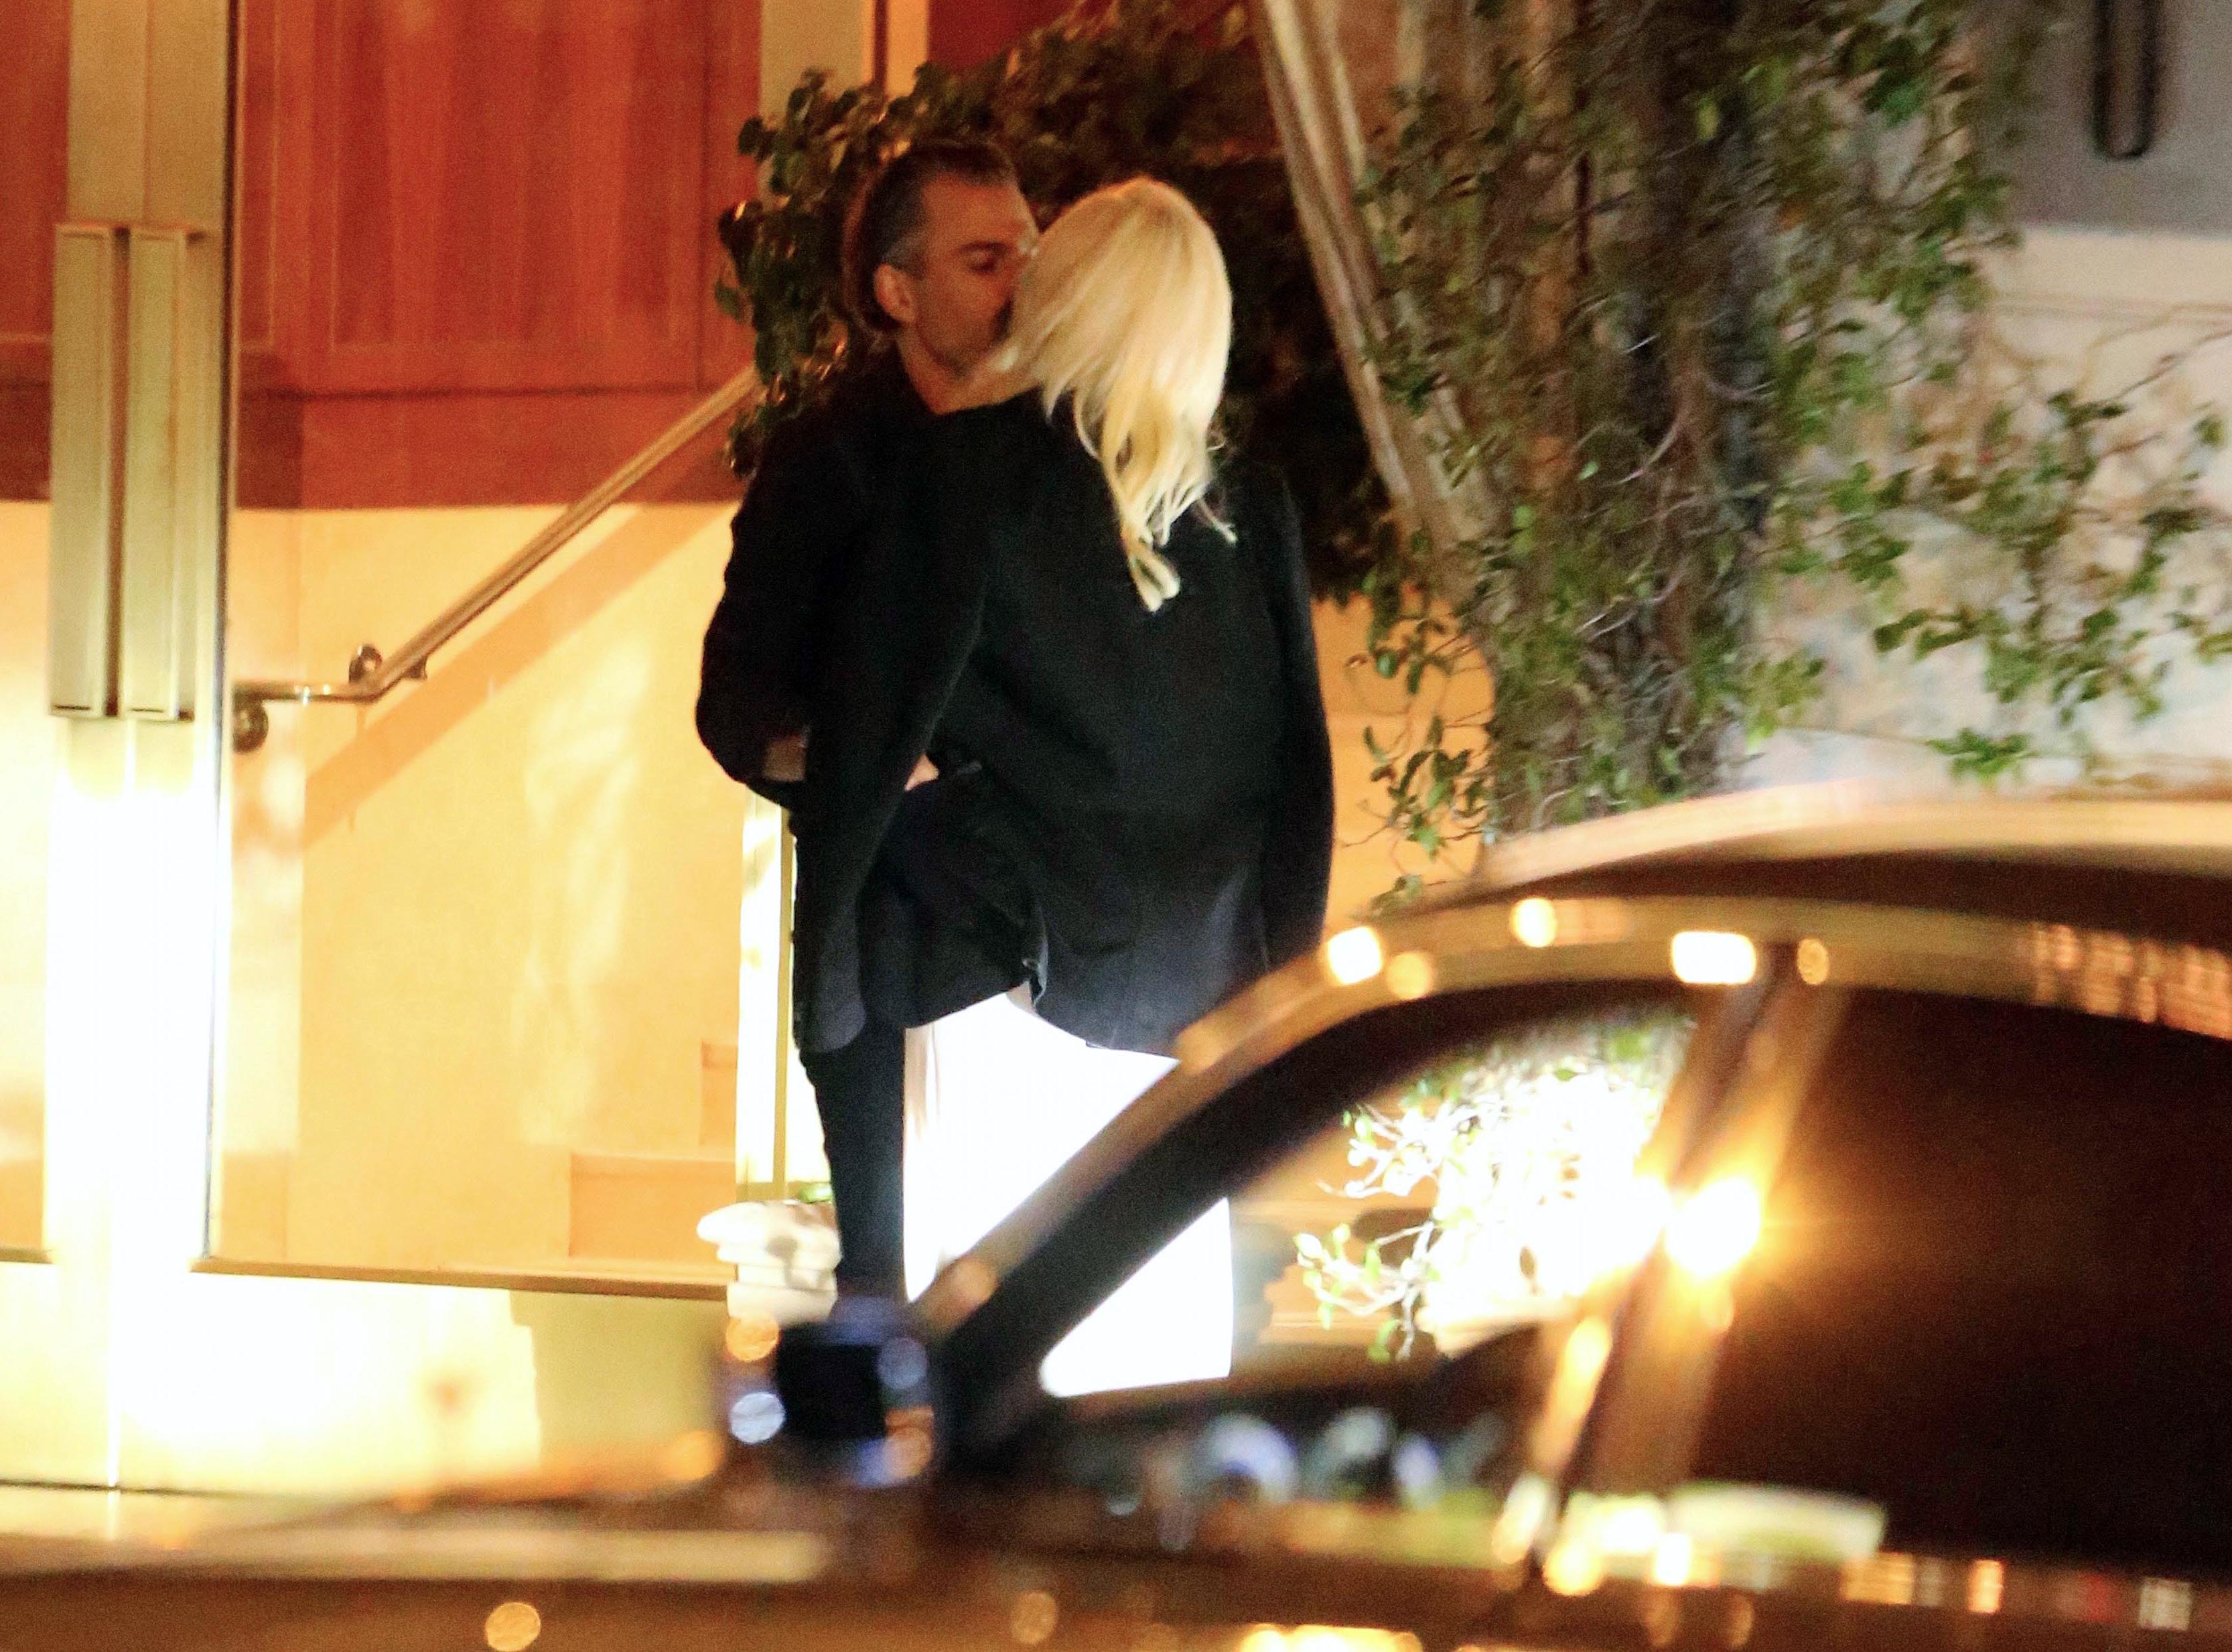 EXCLUSIVE Lady Gaga and Christian Carino Share a Long Kiss while Leaving a Party